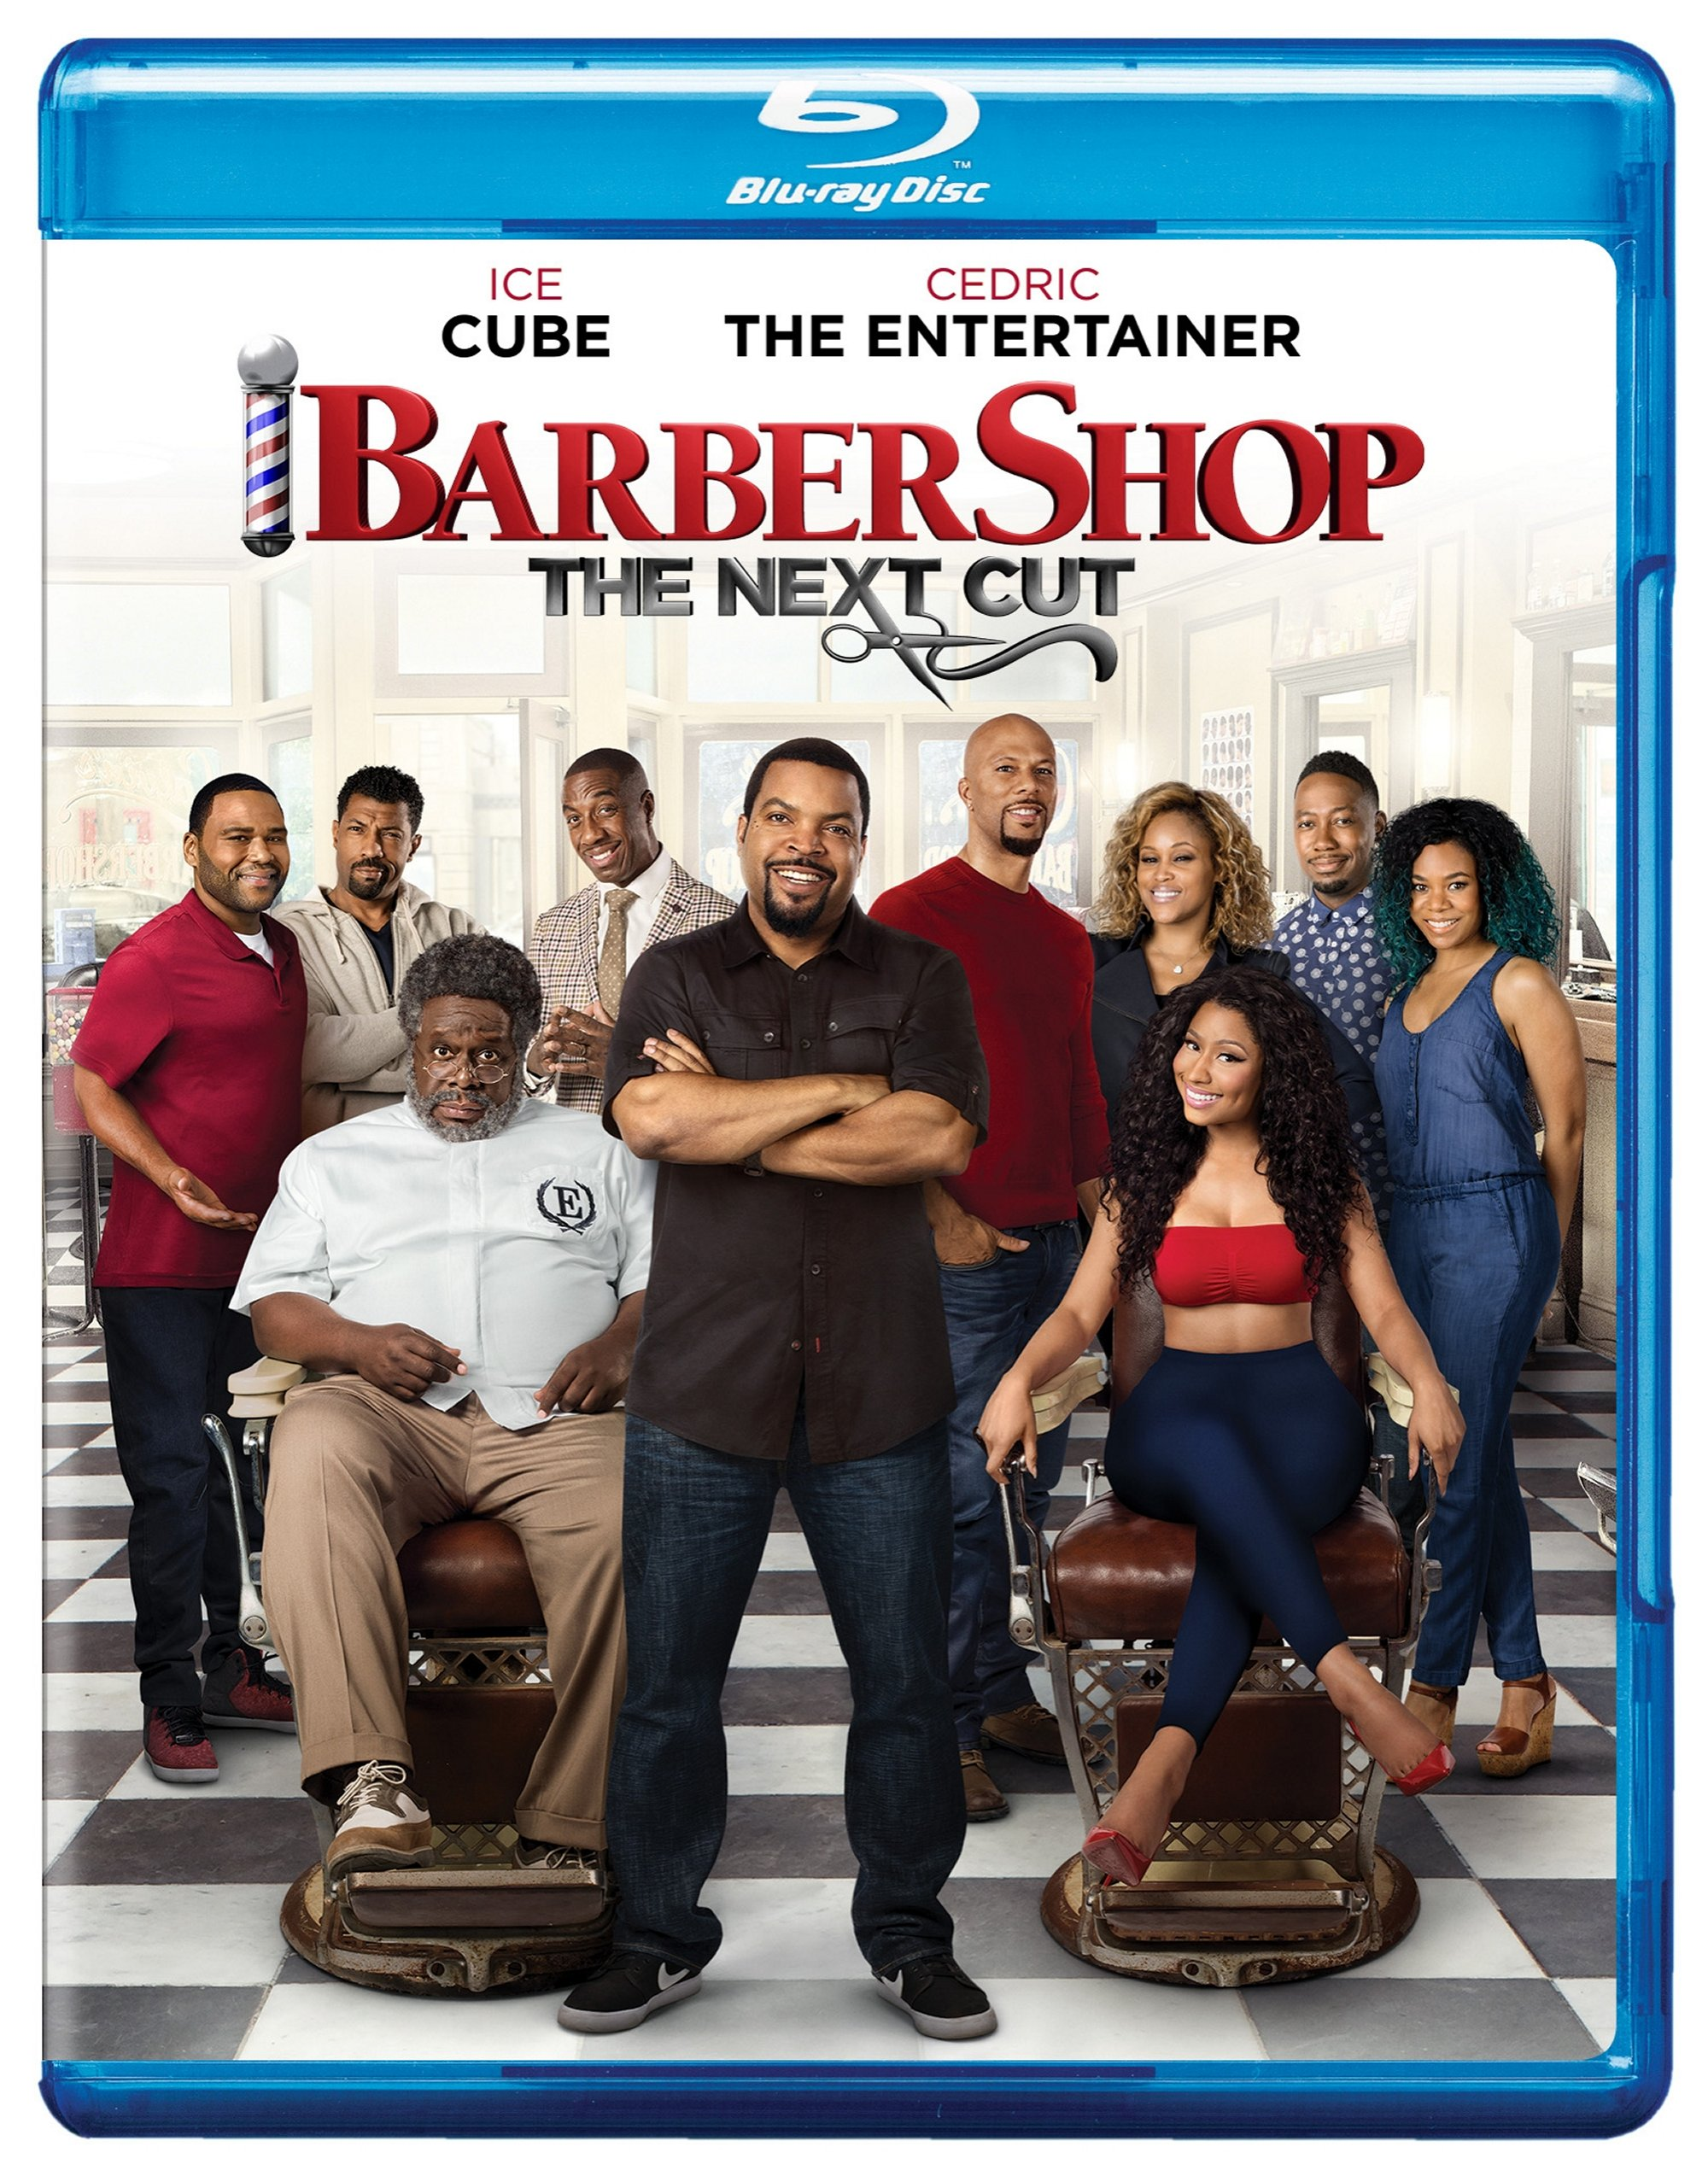 Barbershop- The Next Cut 2D Box Art